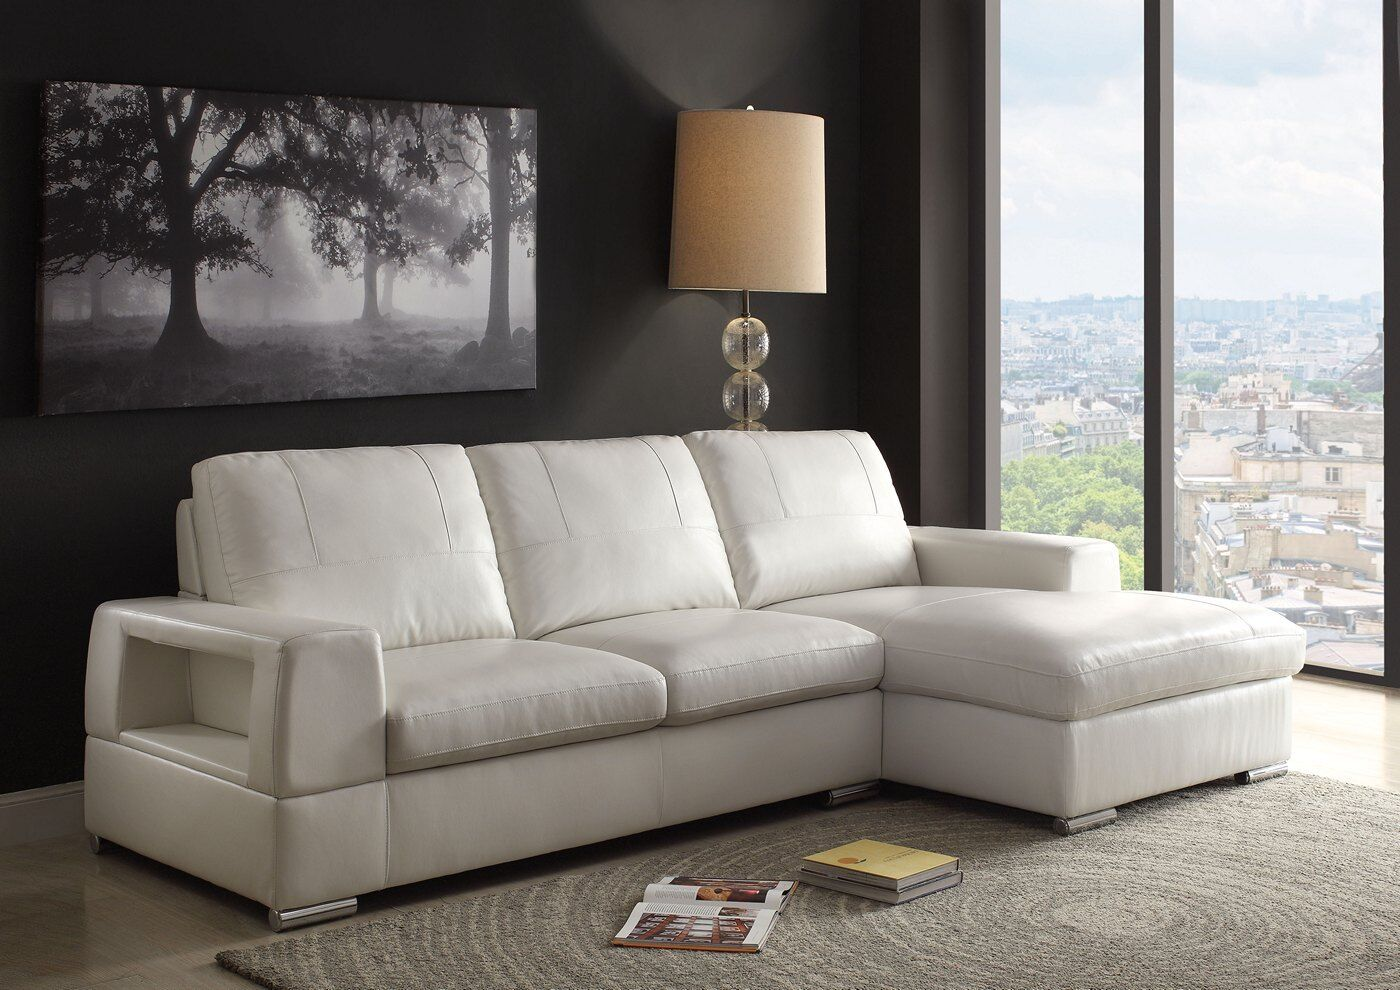 Kaidan Contemporary Sectional Sofa In Ivory White Faux Leather For Sale Online